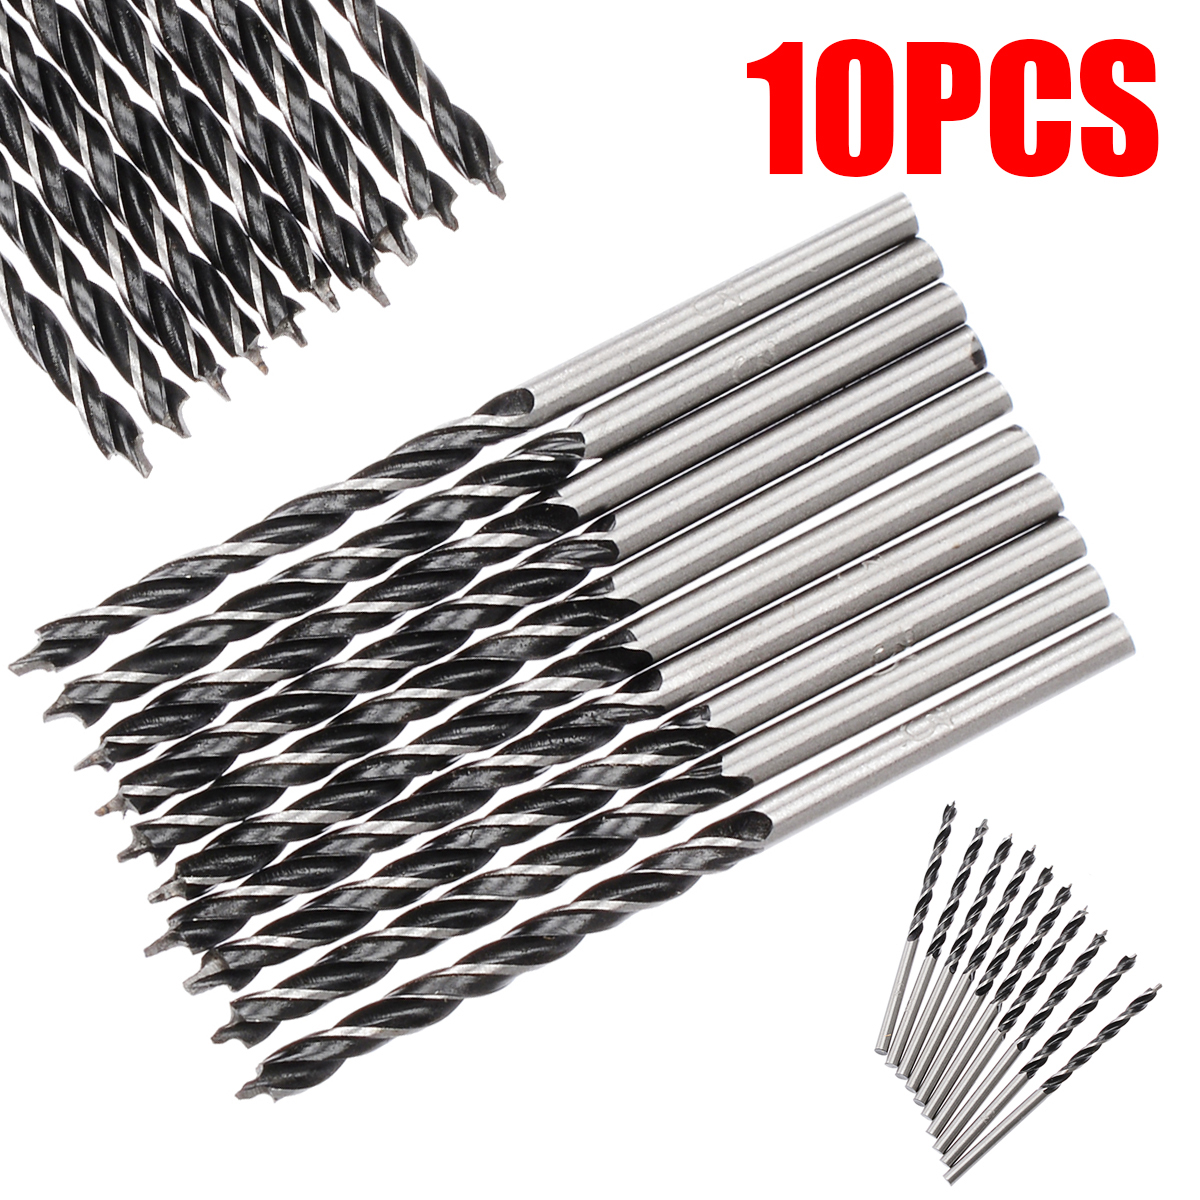 10pcs 3mm Diam Twist Drill Bit Wood Drill Bits With Center Point High Strength Drilling Tool For Woodworking